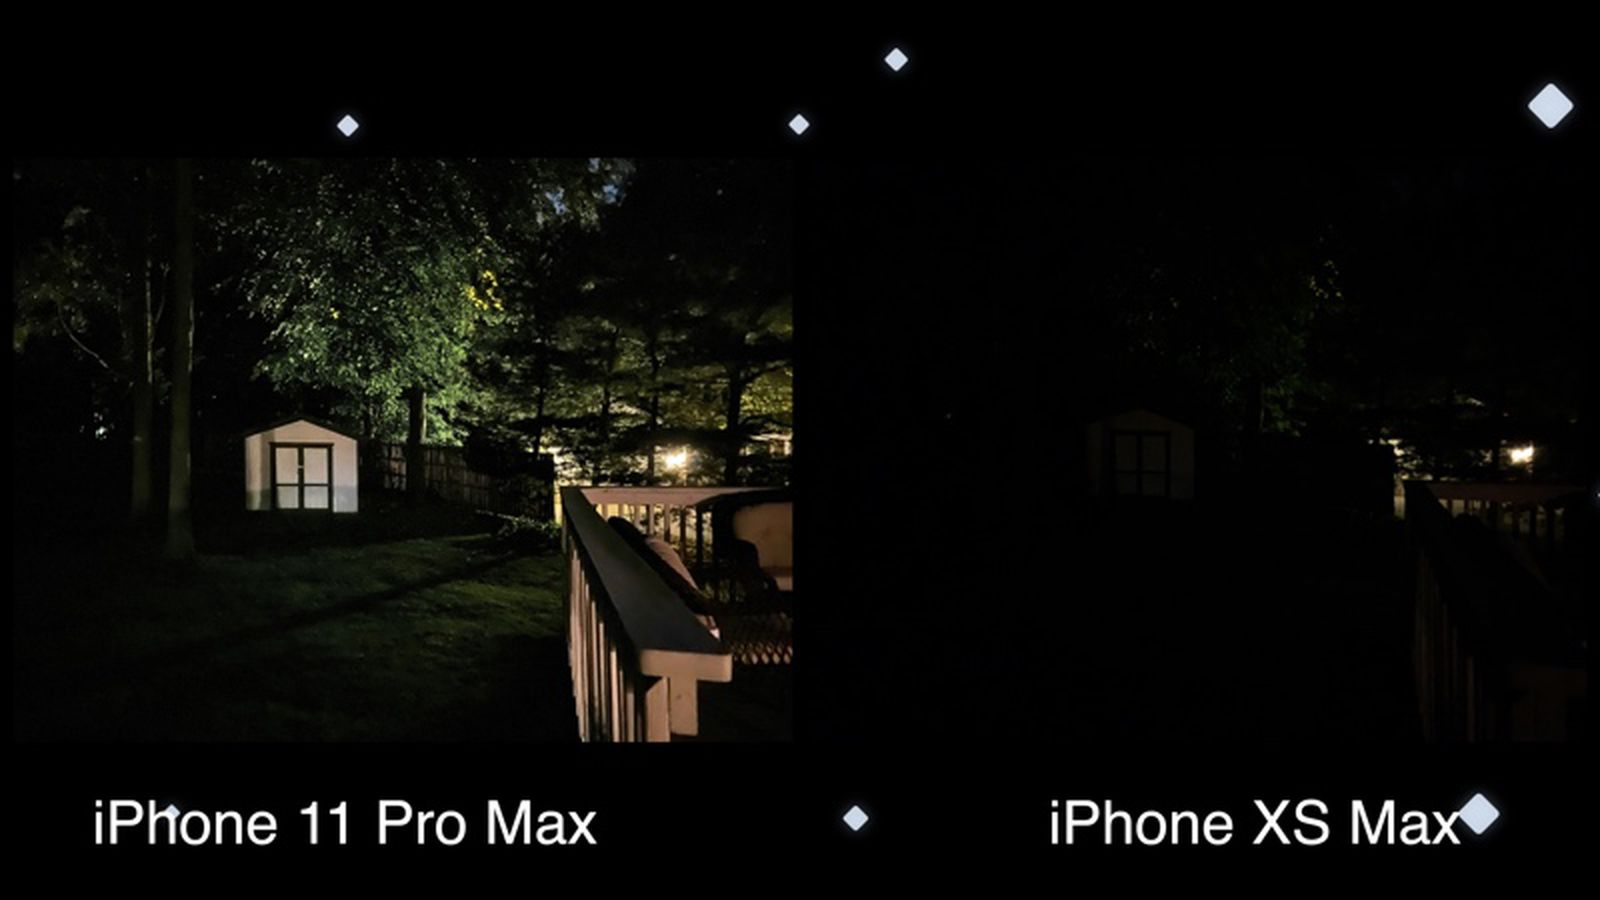 Camera Comparison Iphone 11 Pro Max Vs Iphone Xs Max Macrumors